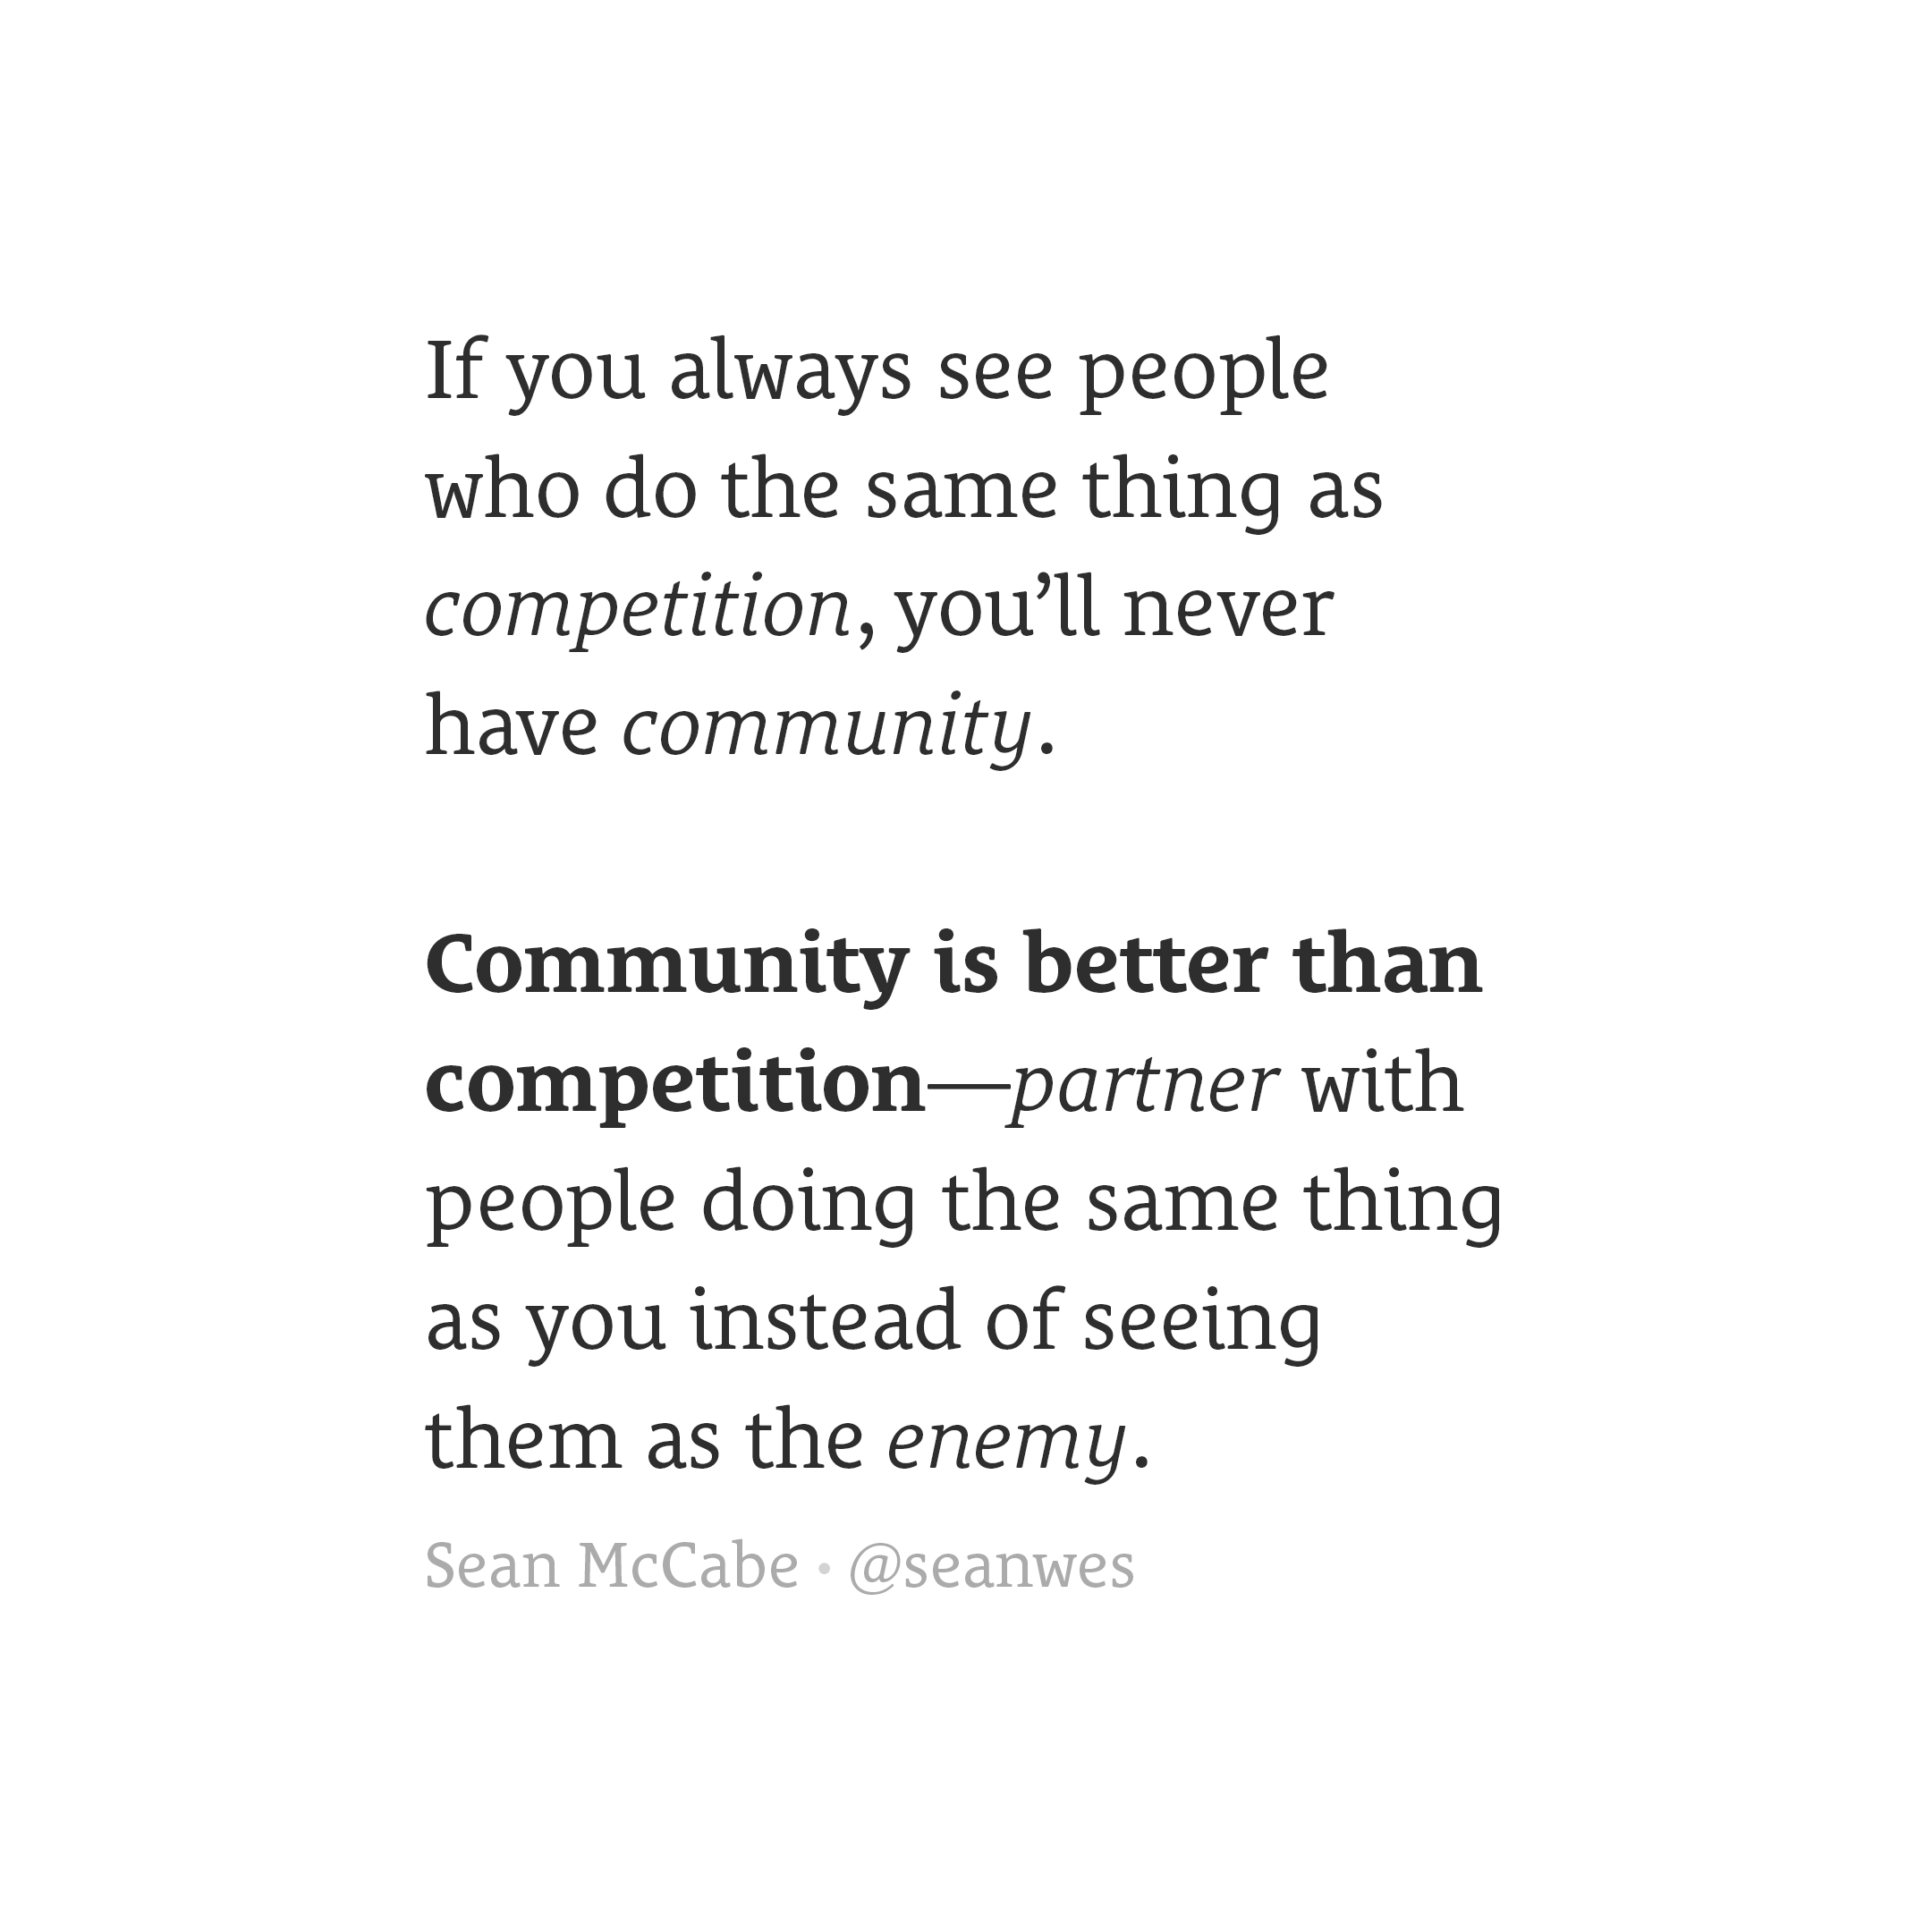 Community is better than competition.